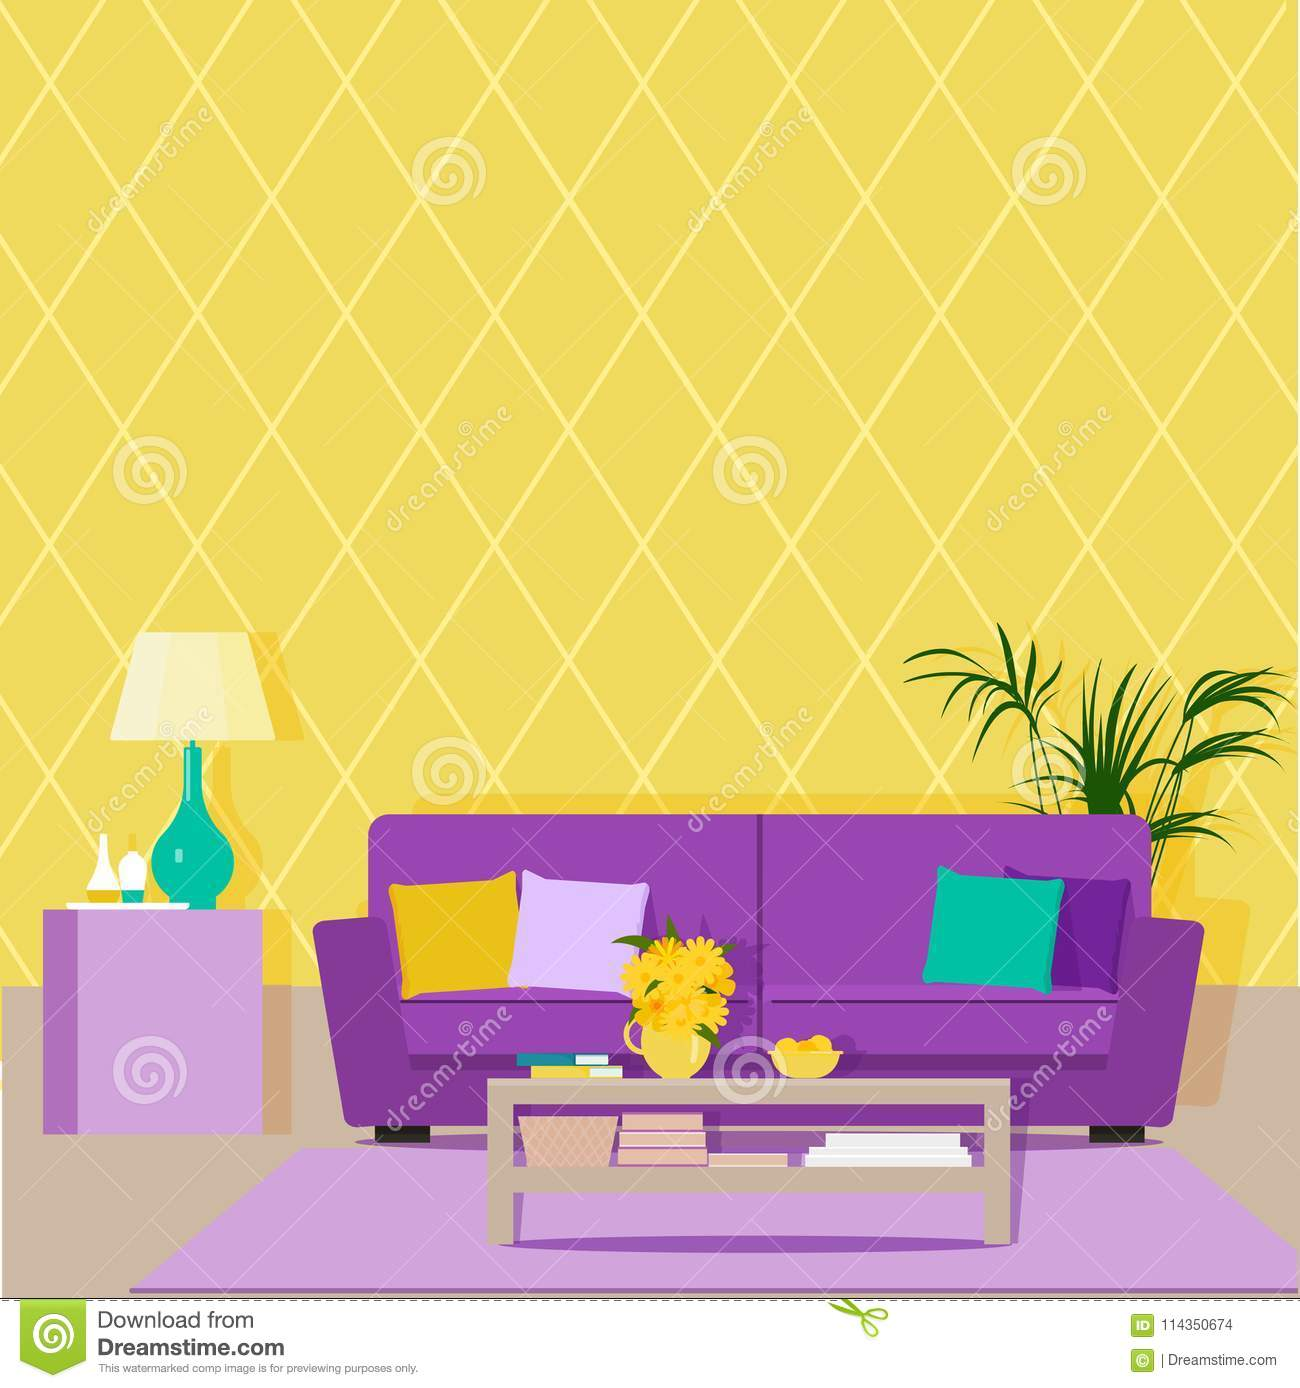 Bright Design Of The Living Room With Yellow Wallpaper And ...